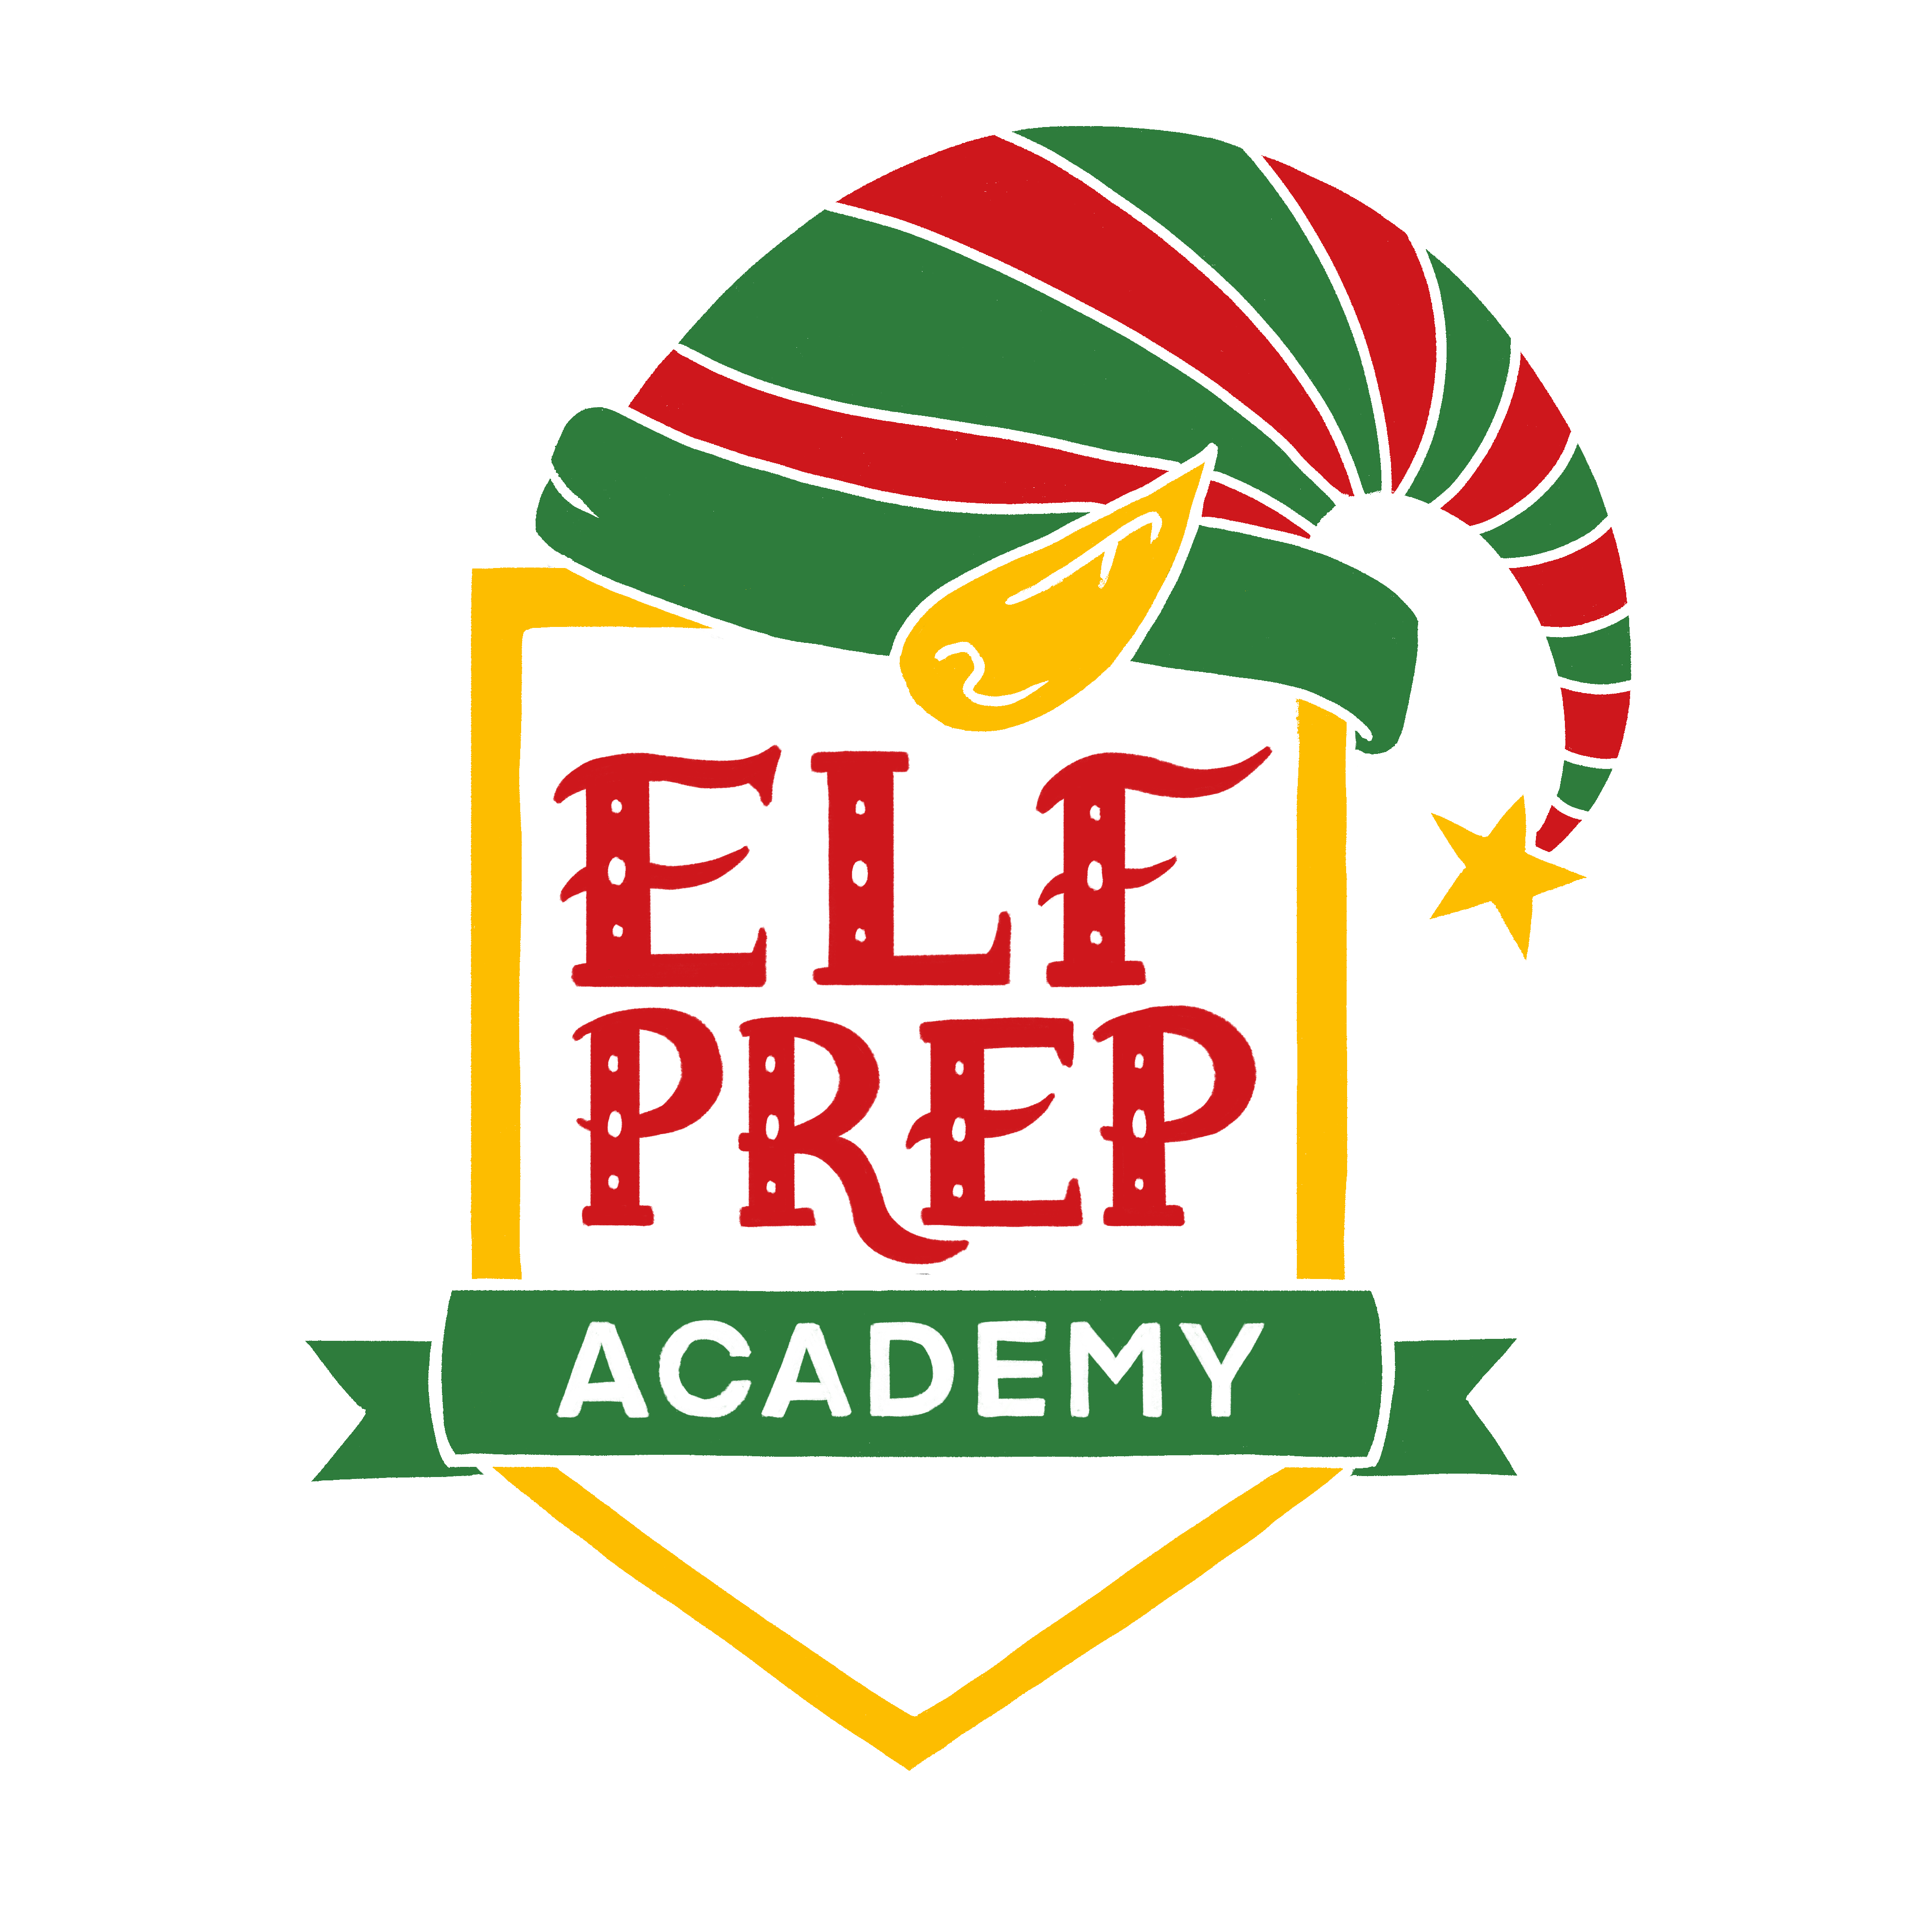 Elf Prep Academy Logo which is a gold shield with Elf Prep Academy text written out and a red and green elf hat on top